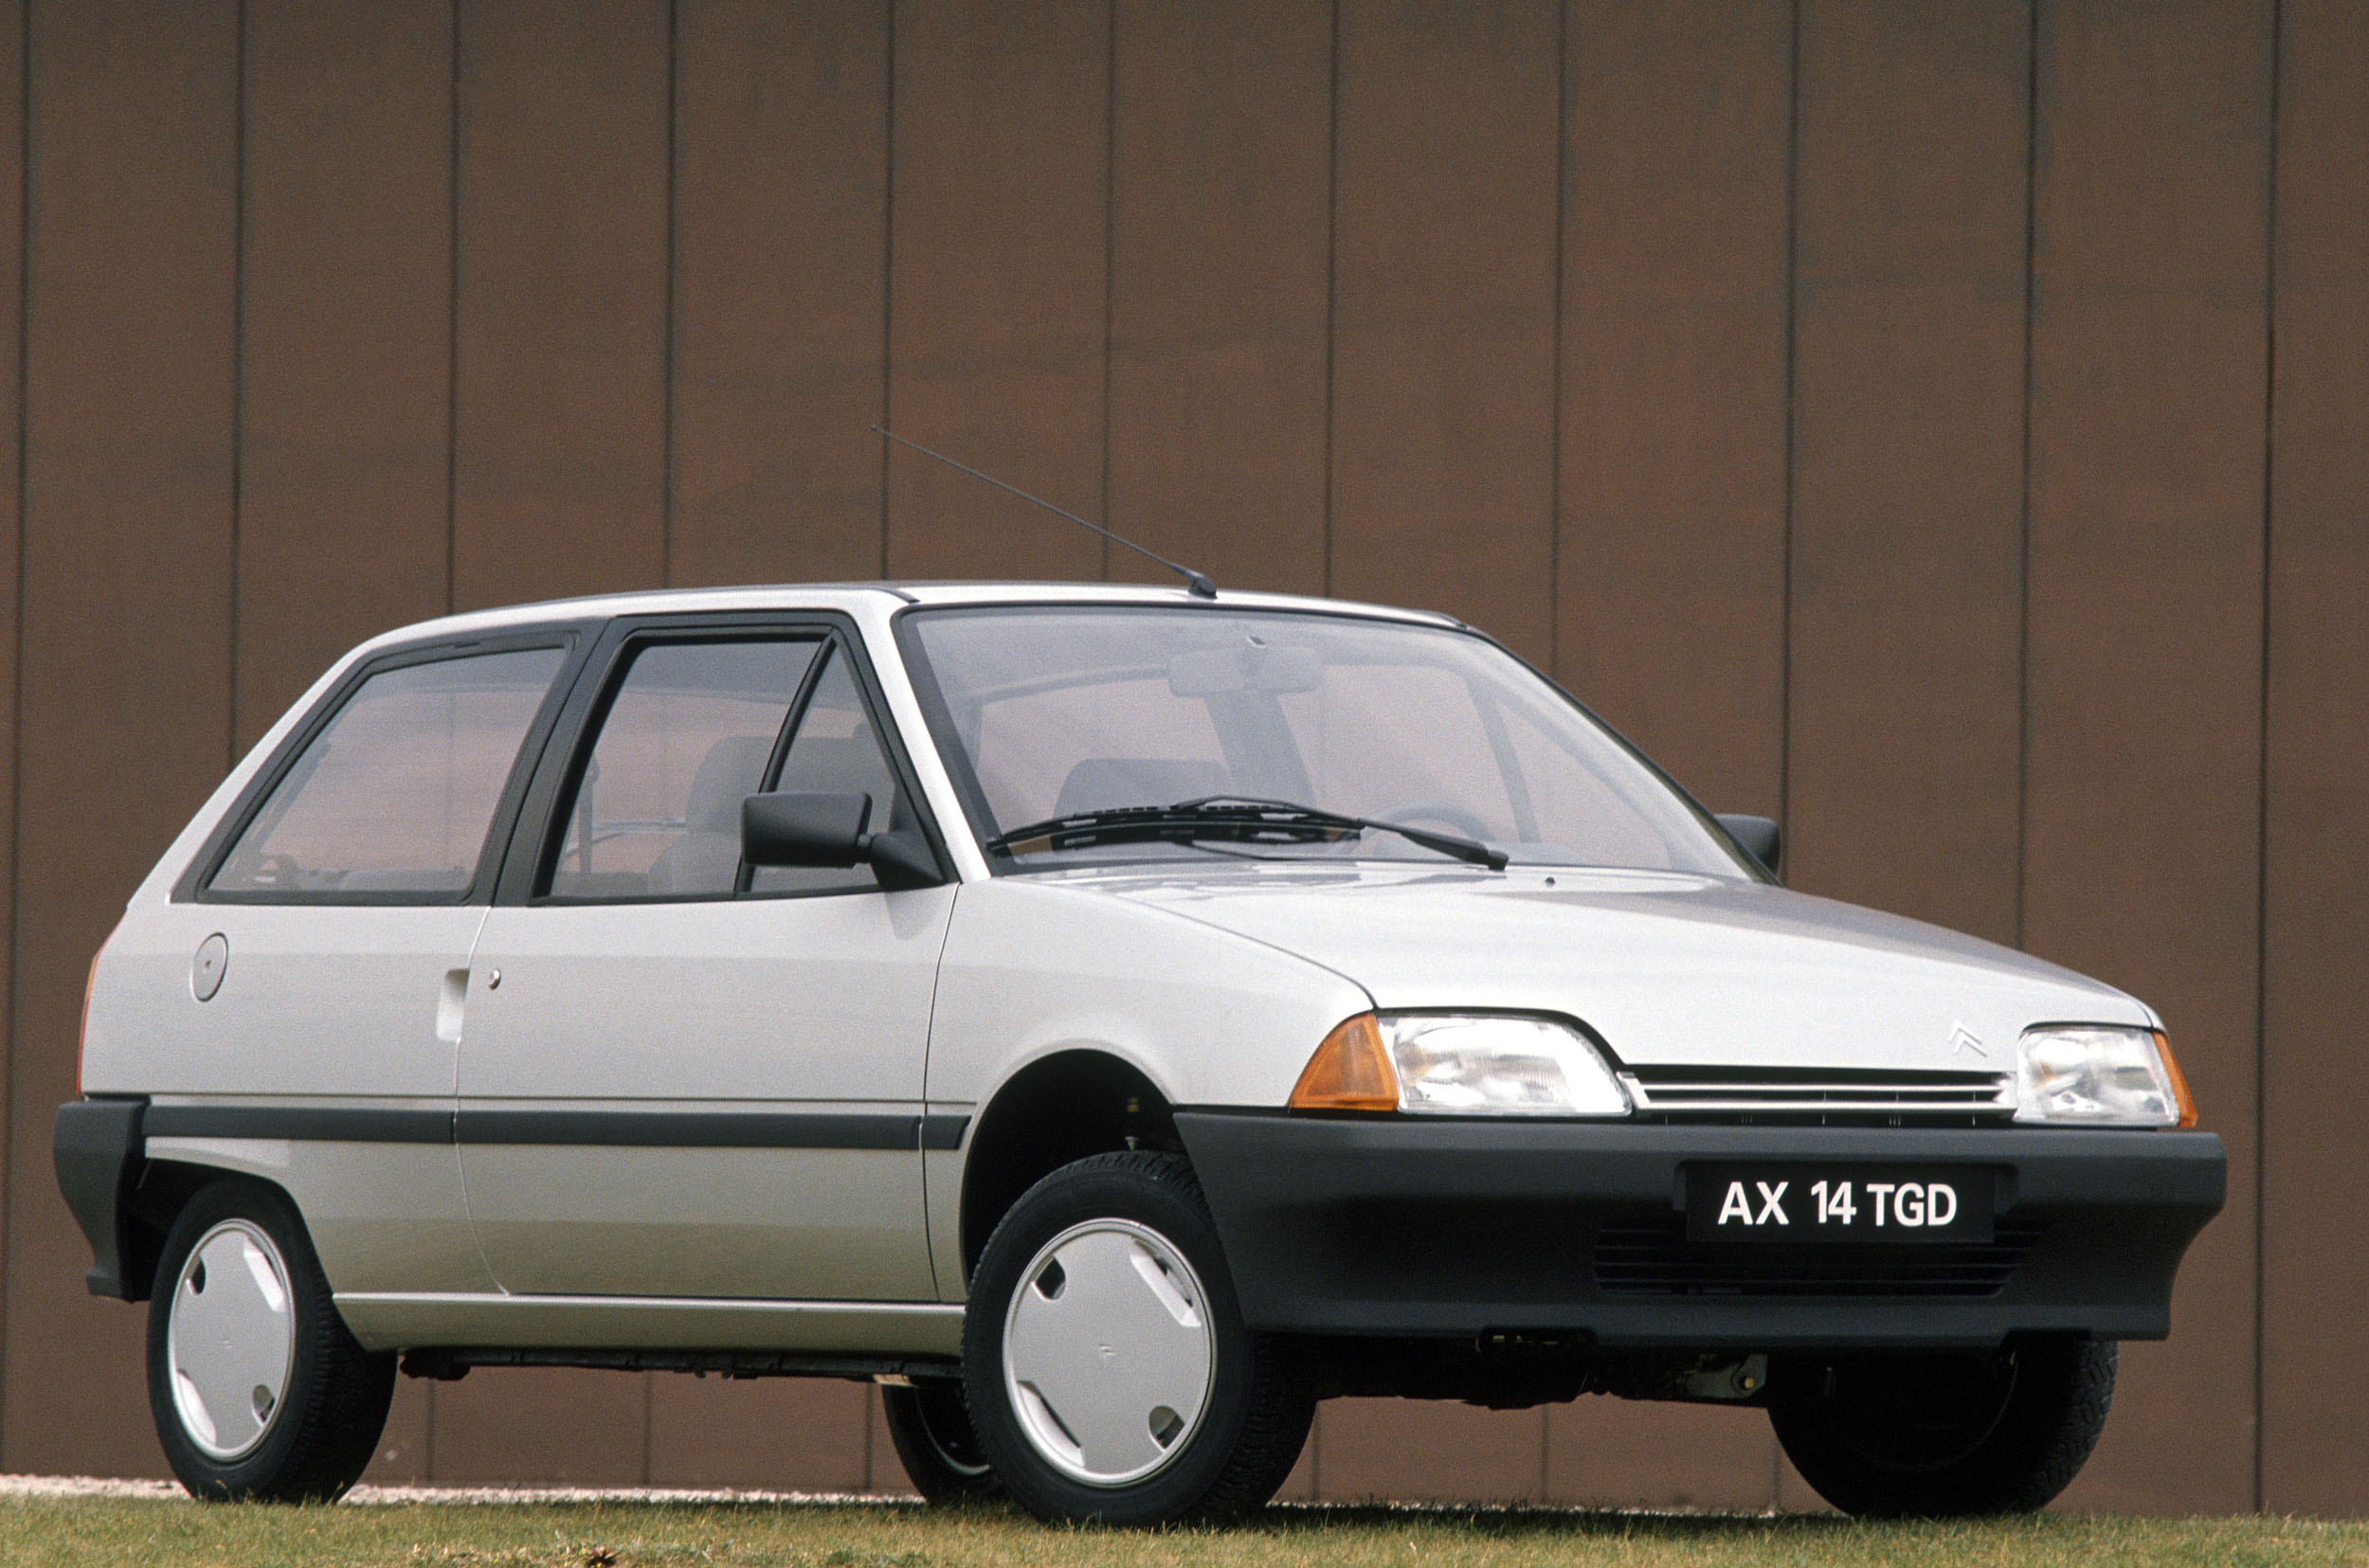 citroen ax 3 doors specs 1986 1987 1988 1989 1990 1991 autoevolution. Black Bedroom Furniture Sets. Home Design Ideas